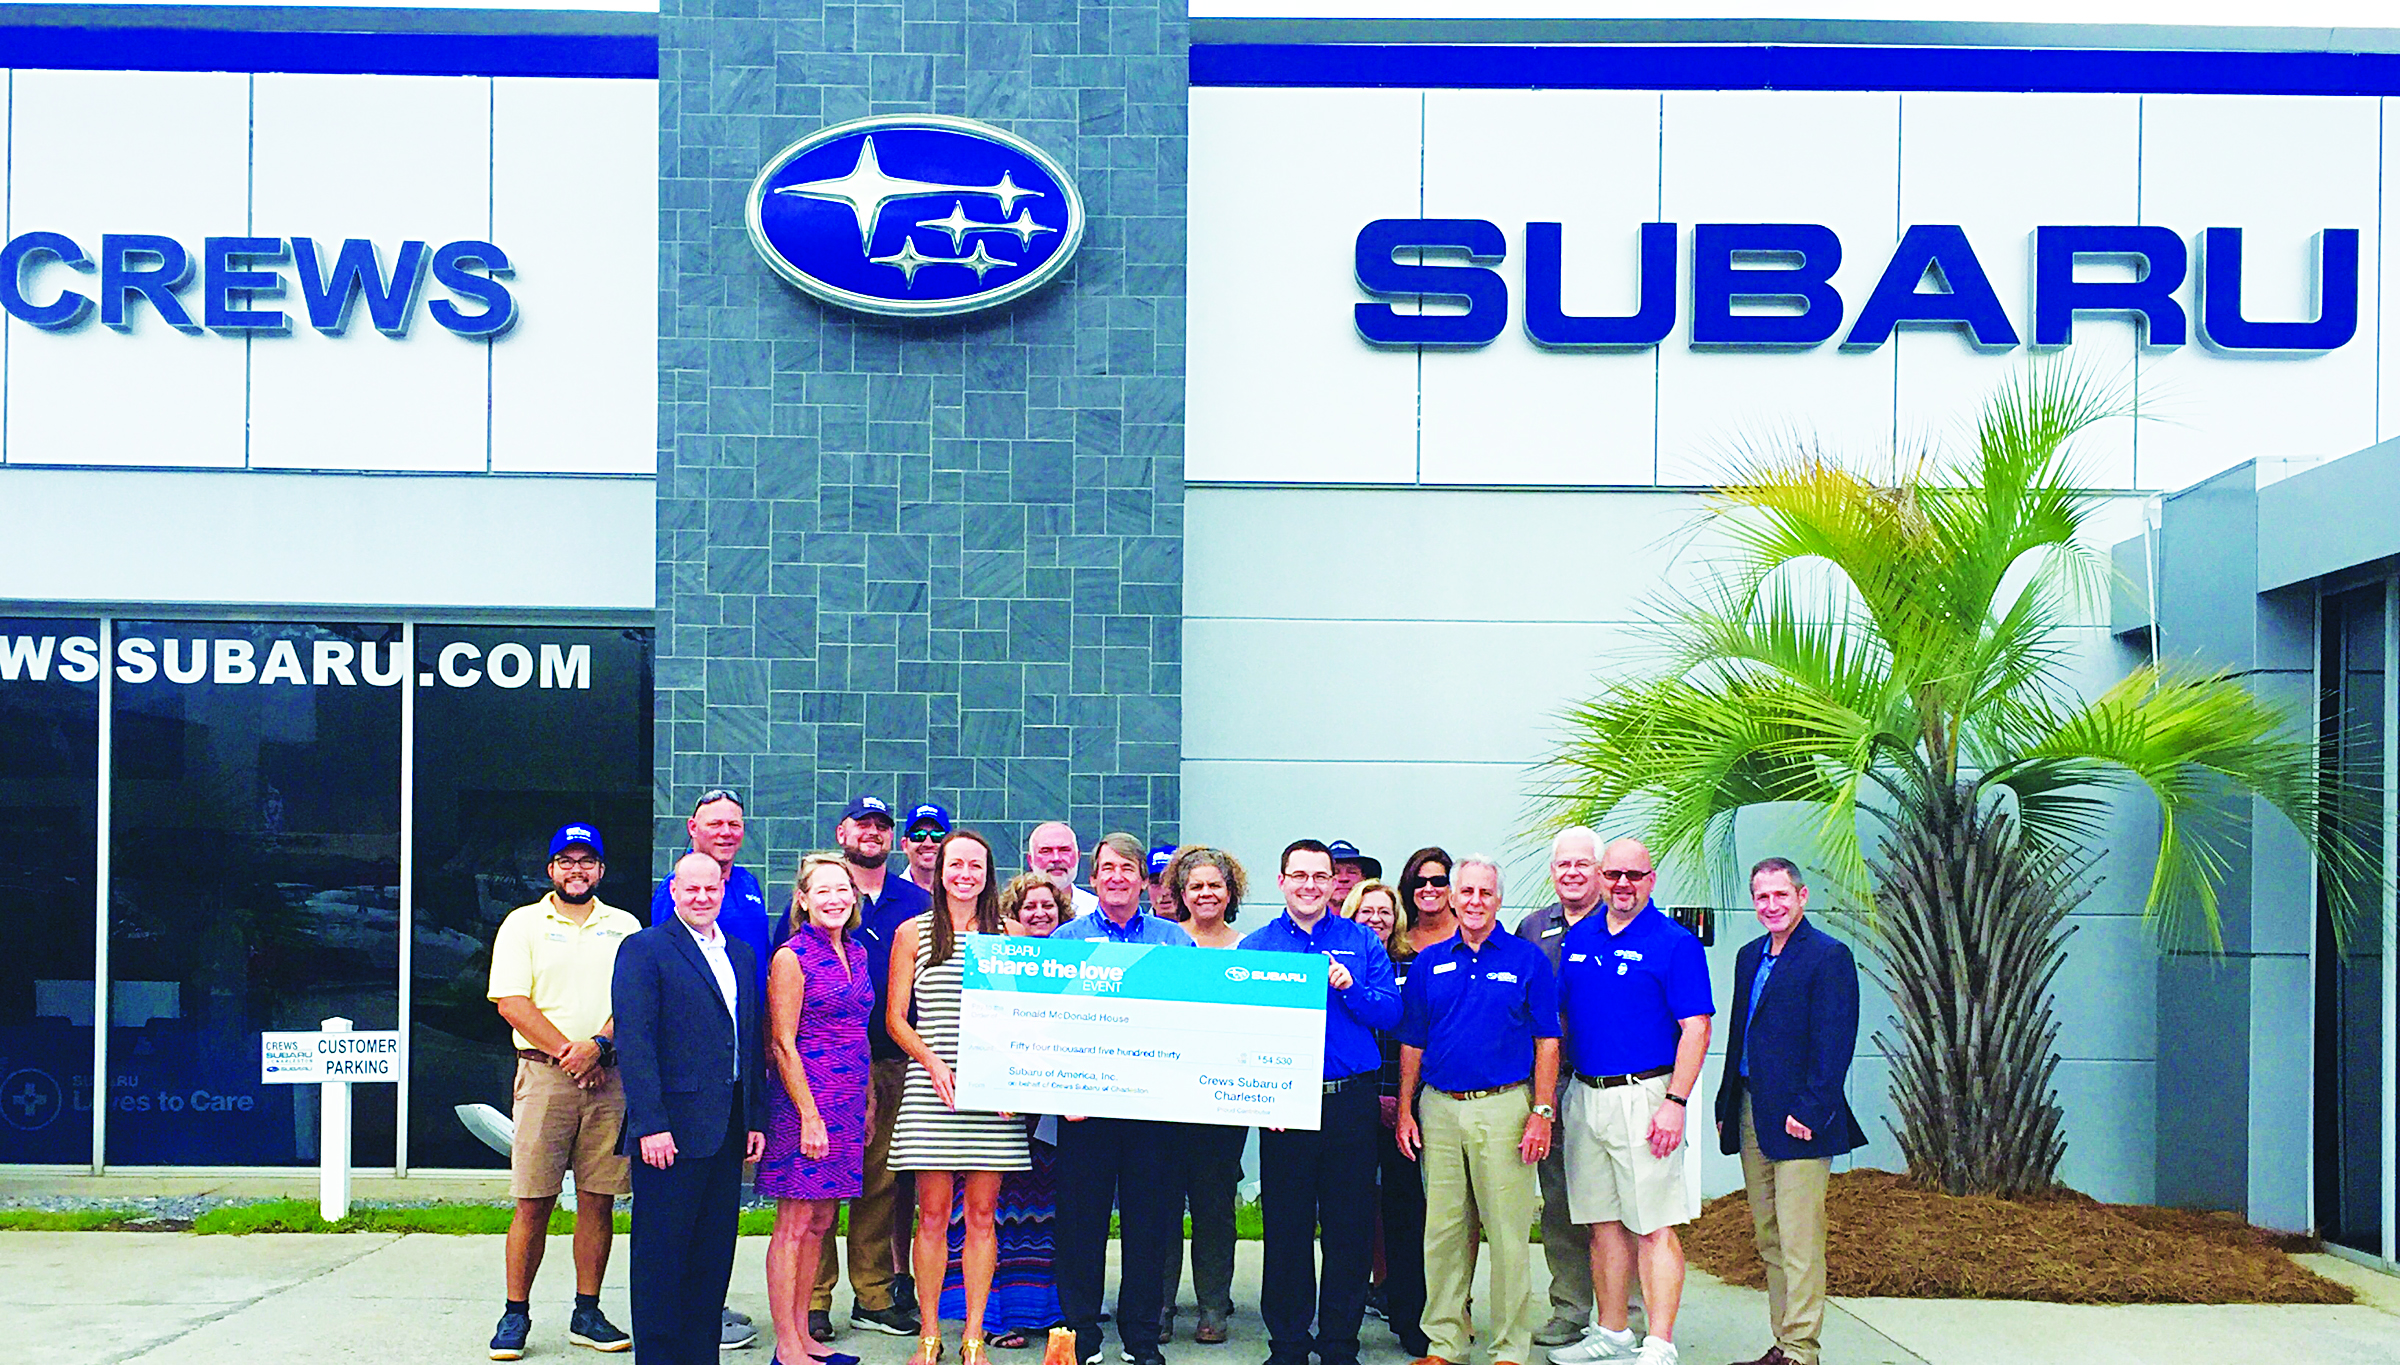 "Crews Subaru of Charleston continues to fulfill the Subaru Love Promise with their recent presentation of a check for $54,380 to Ronald McDonald House Charities of Charleston. The funds were generated during the Subaru Share the Love event. The effort is ""just part of the local commitment Crews Subaru has made to the Lowcountry,"" stated a press release. Shown are members of the Crews Subaru team, surrounding RMHC staff, Subaru zone staff and Robert Crews, president, and HR Hicks, general manager of locally-owned Crews Subaru."